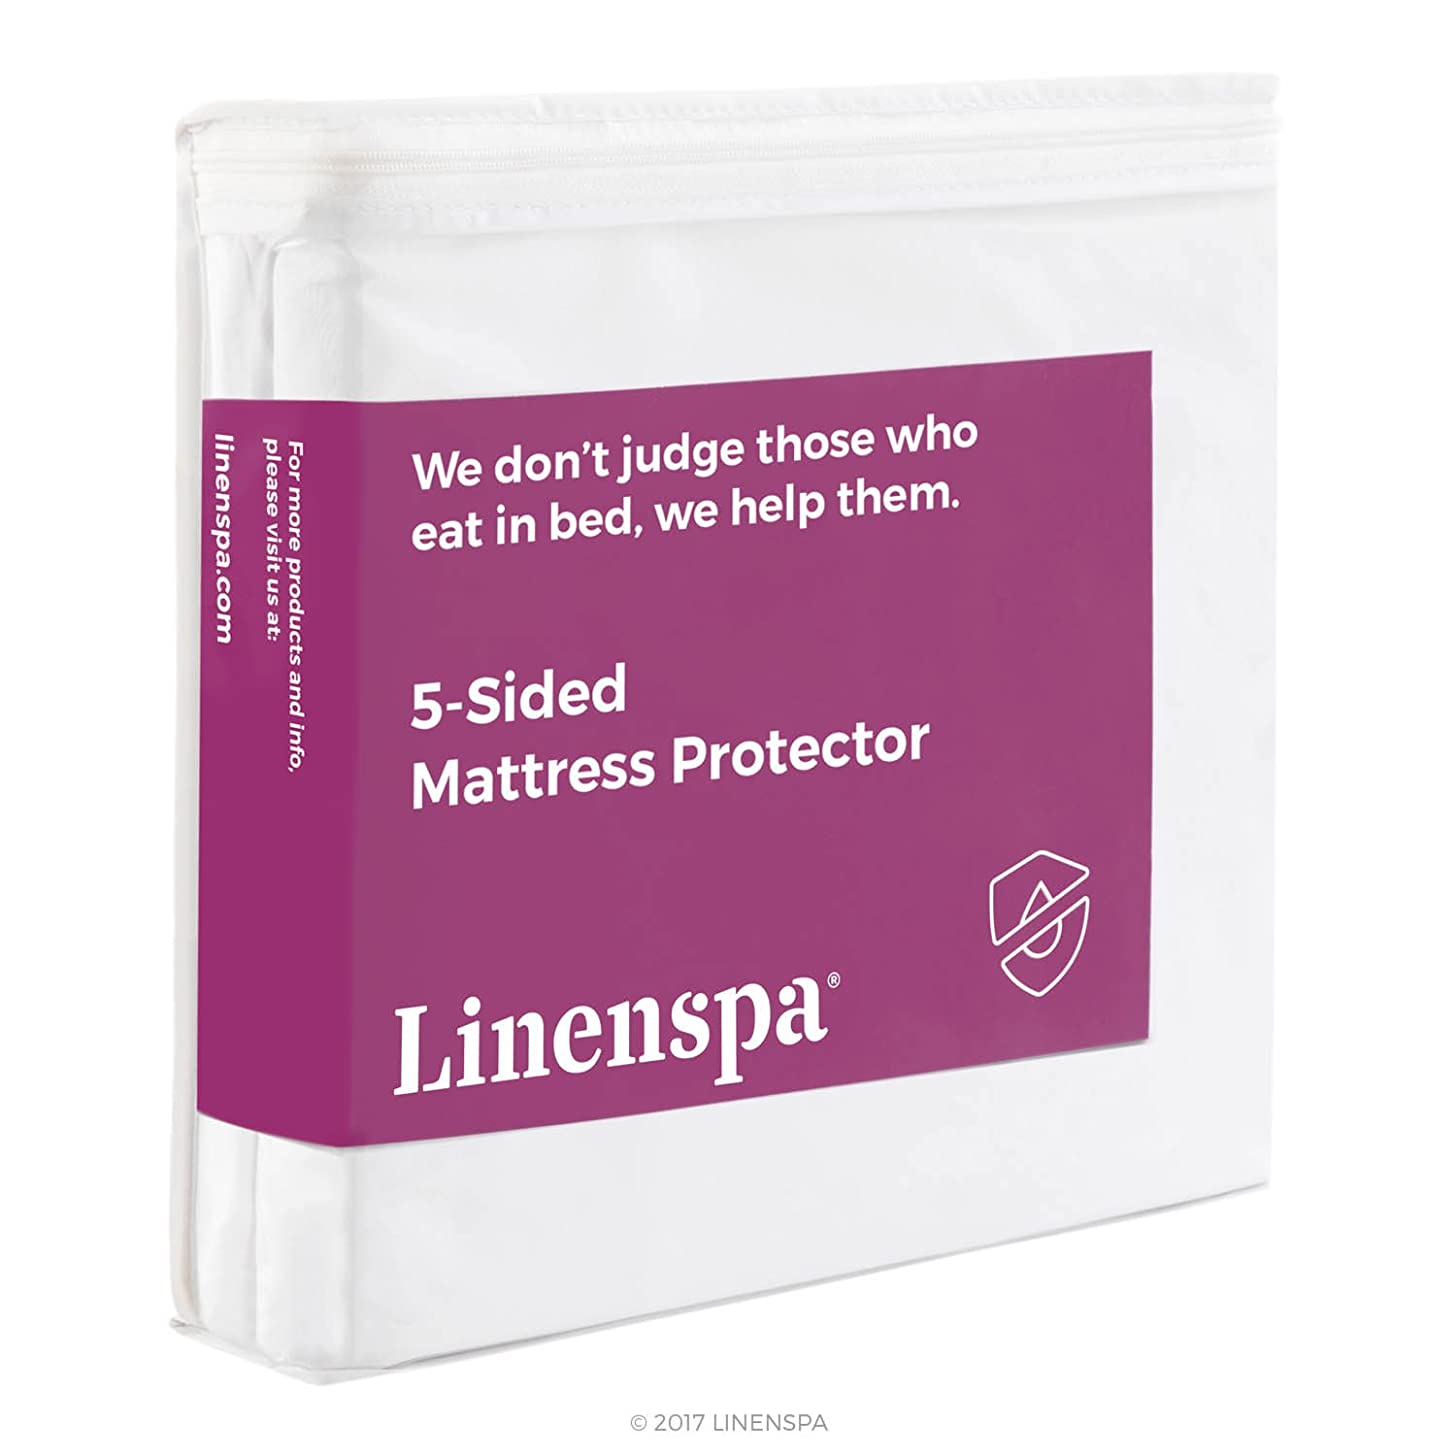 Twin Size LINENSPA Five Sided Mattress Protector - Guards Top and Sides of Mattress from Liquids, Dust Mites, and Allergens - Fitted Style - Waterproof Cover